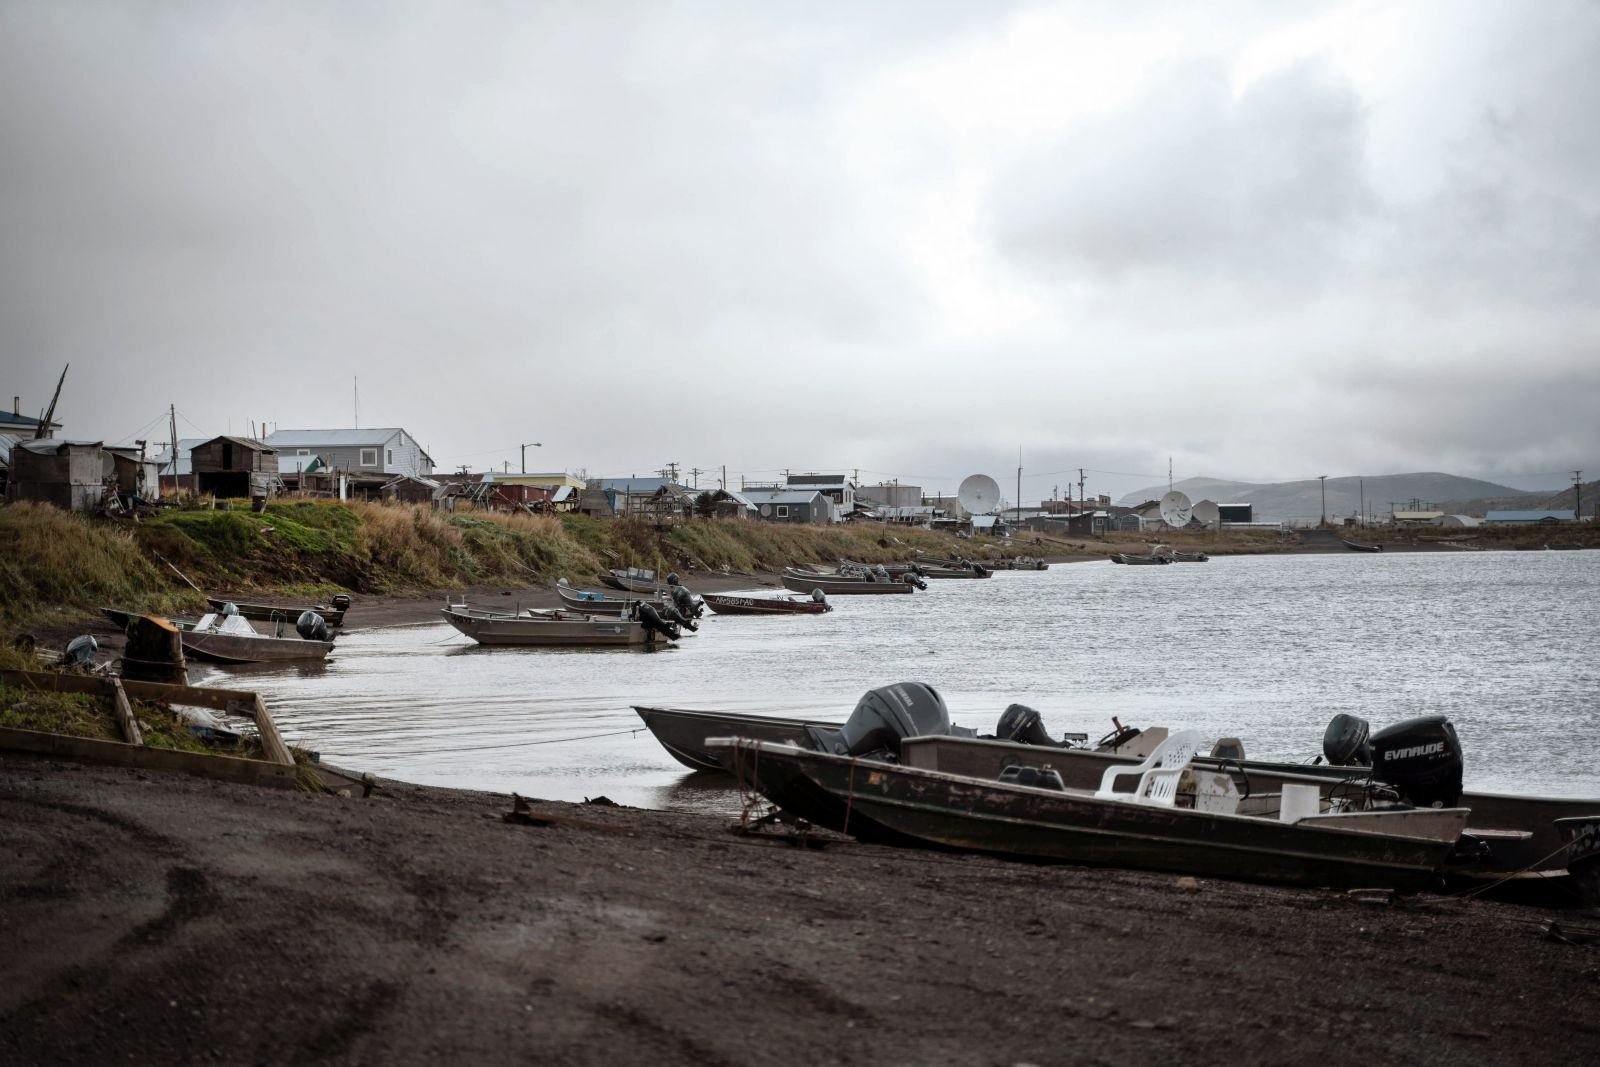 Fishing boats line the shore in Unalakleet, Alaska.